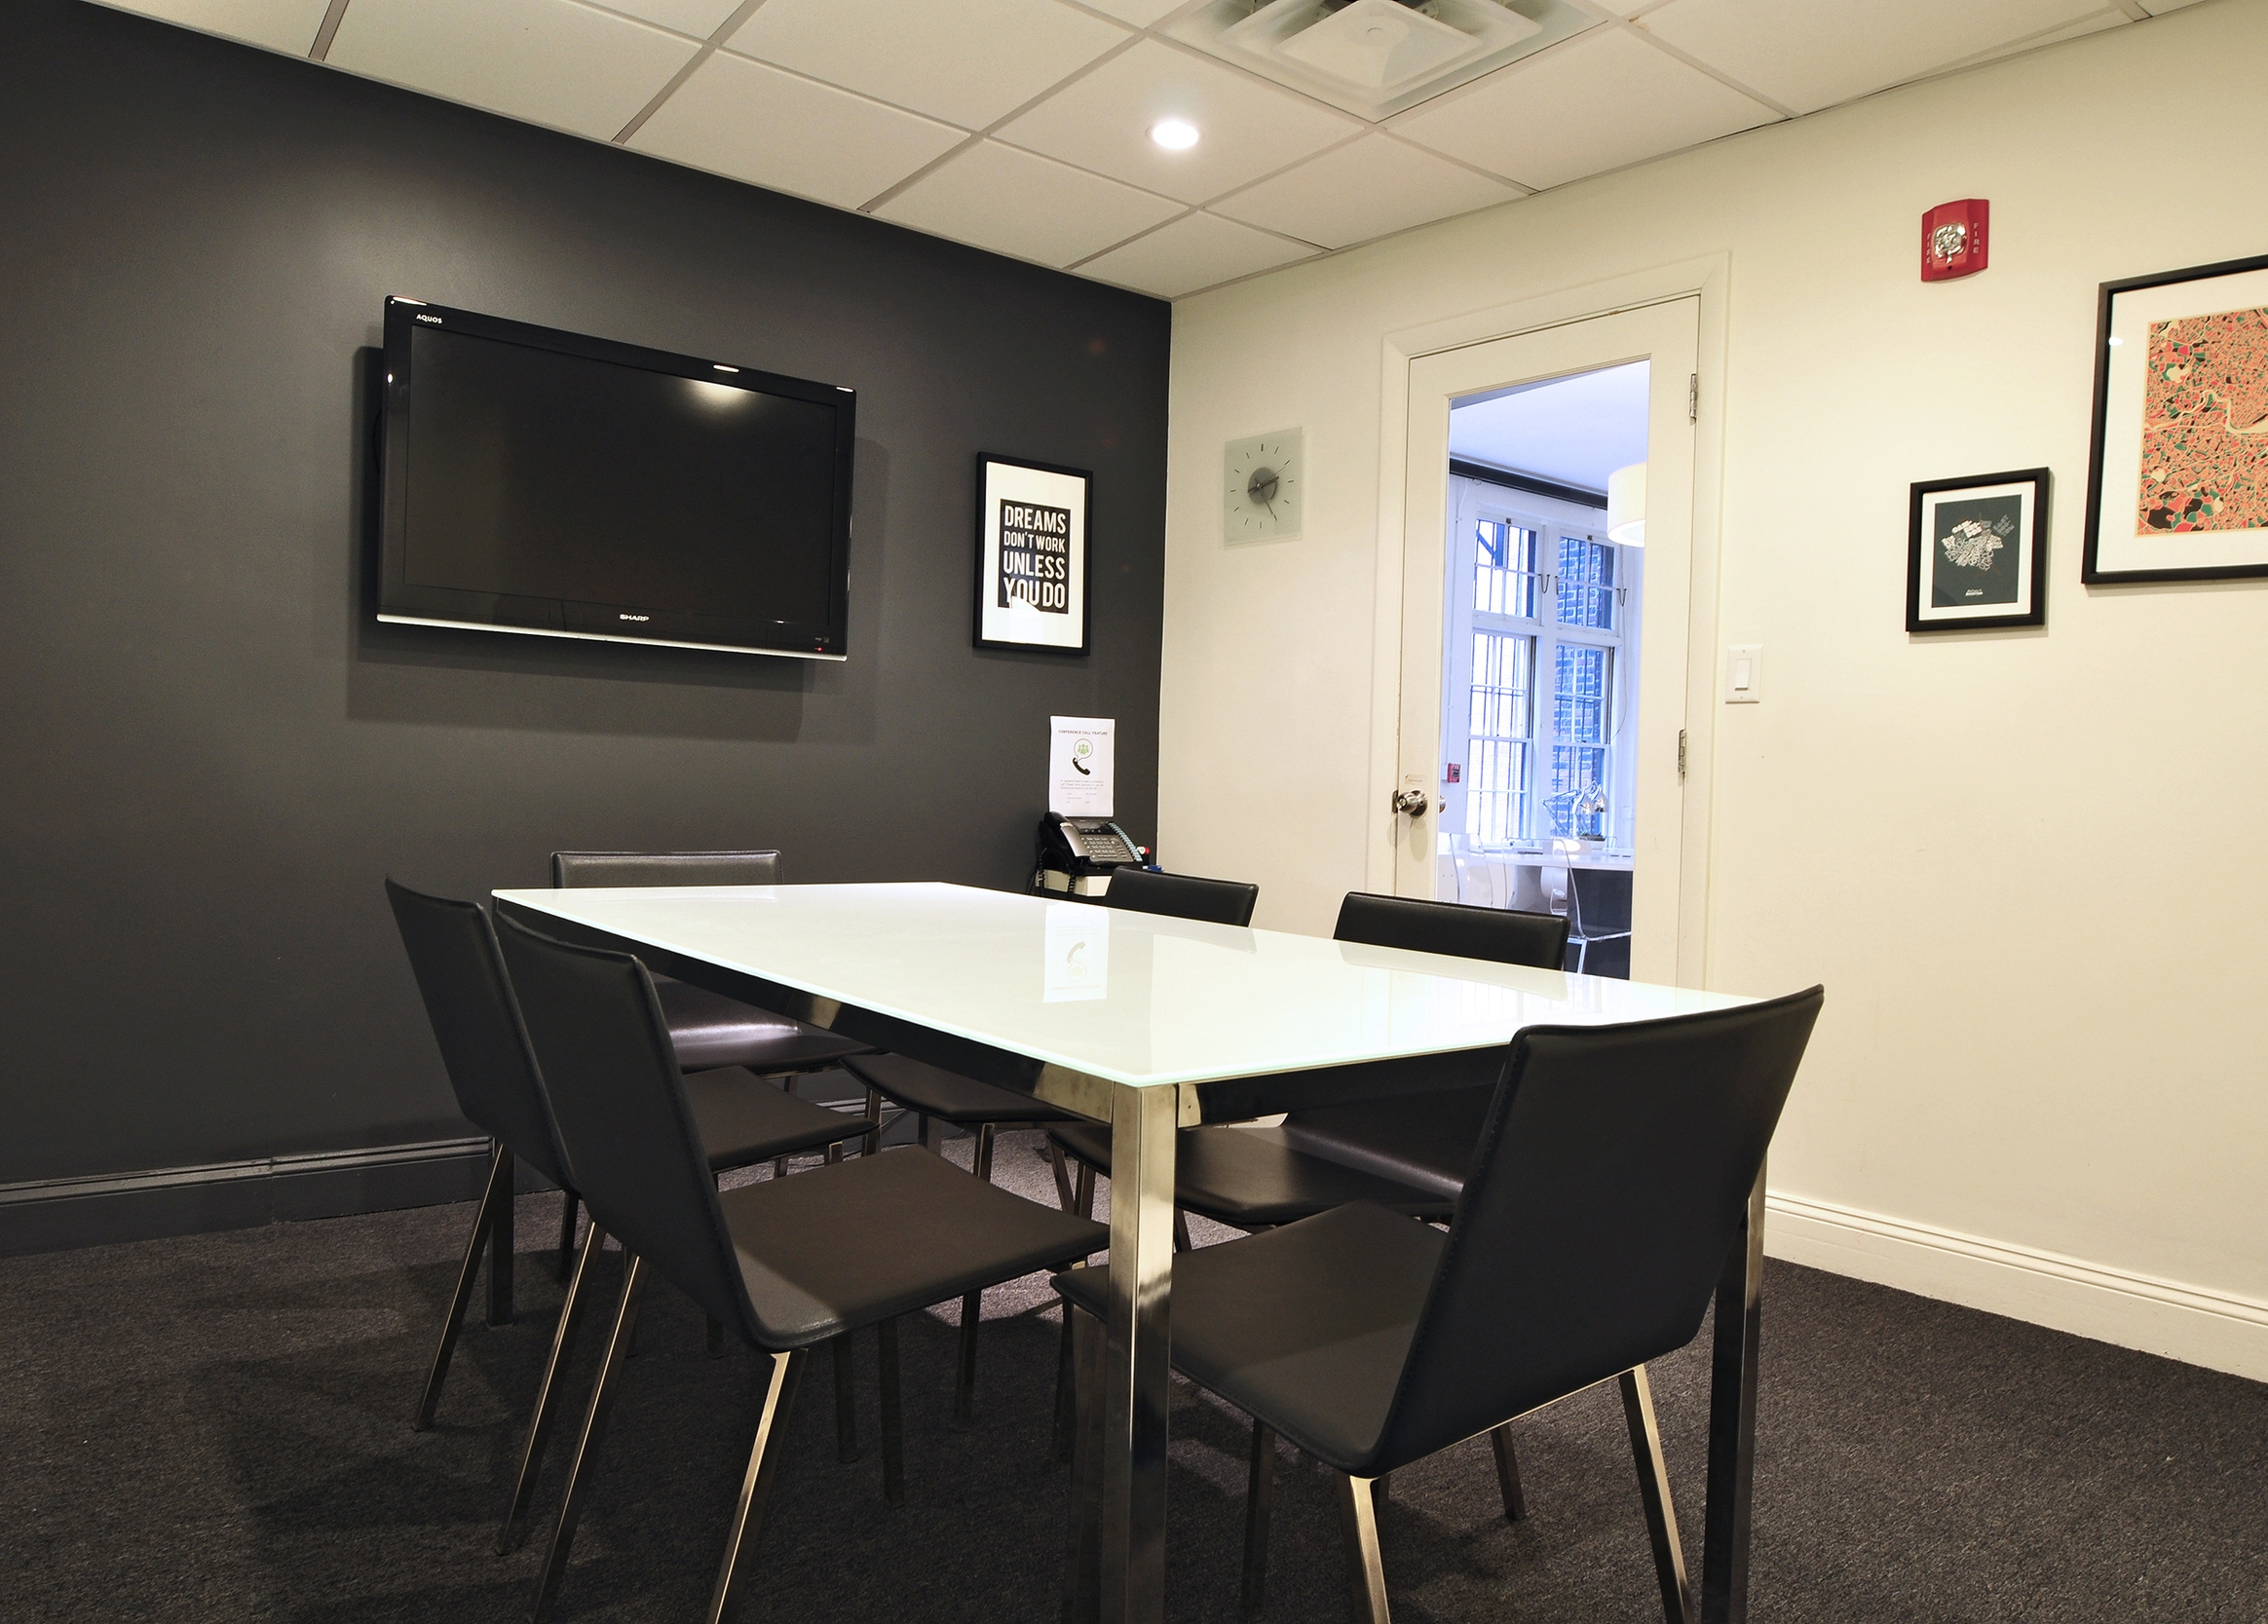 DUXBURY   (Capacity 6 people)   $70 per hour / $220 half day / $360 full day    Includes:  Monitor, Mark-Up Wall, Direct Phone Line  Make a Reservation:  Call (857) 239-9843 or  Email Us   Payment:  50% to hold reservation, 50% day of meeting  Location:  30 Newbury Street, 3rd Floor ( Map )